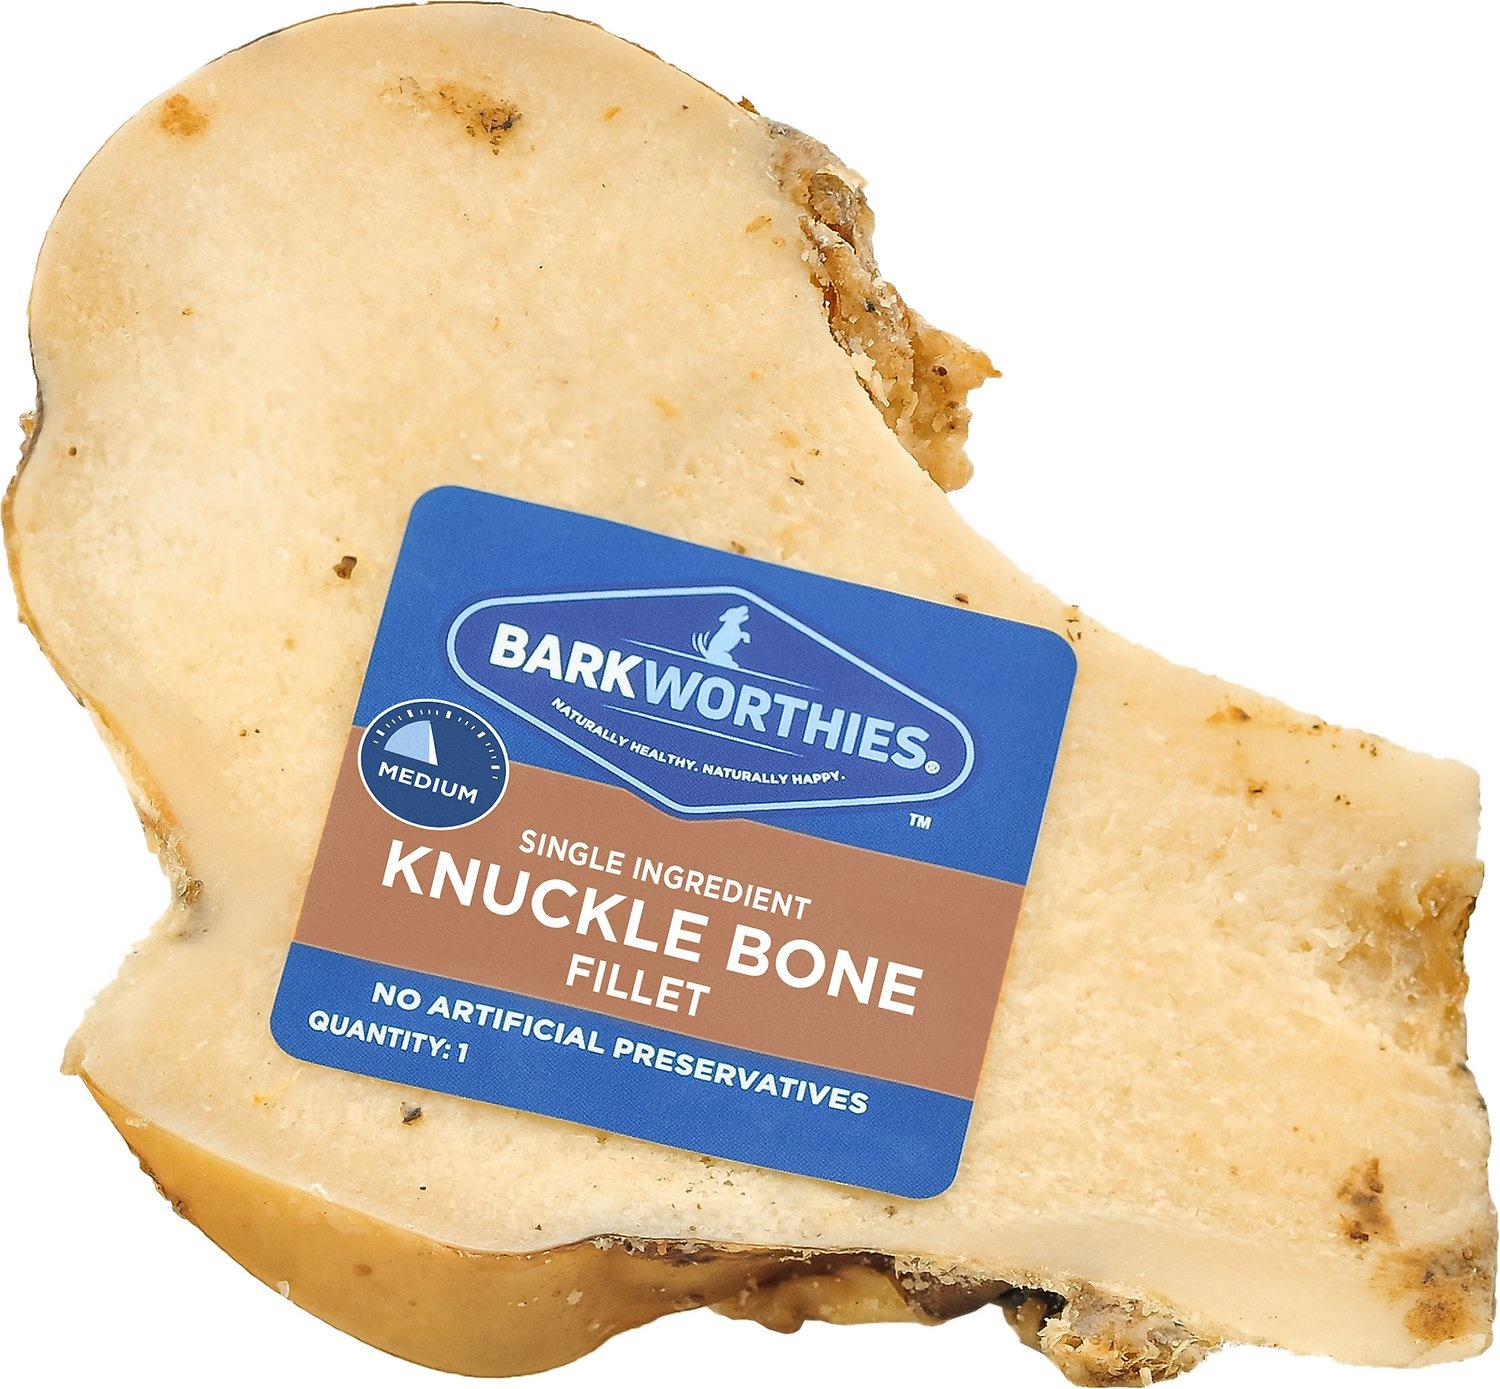 Barkworthies Barkworthies Knuckle Bone Filet Product Image